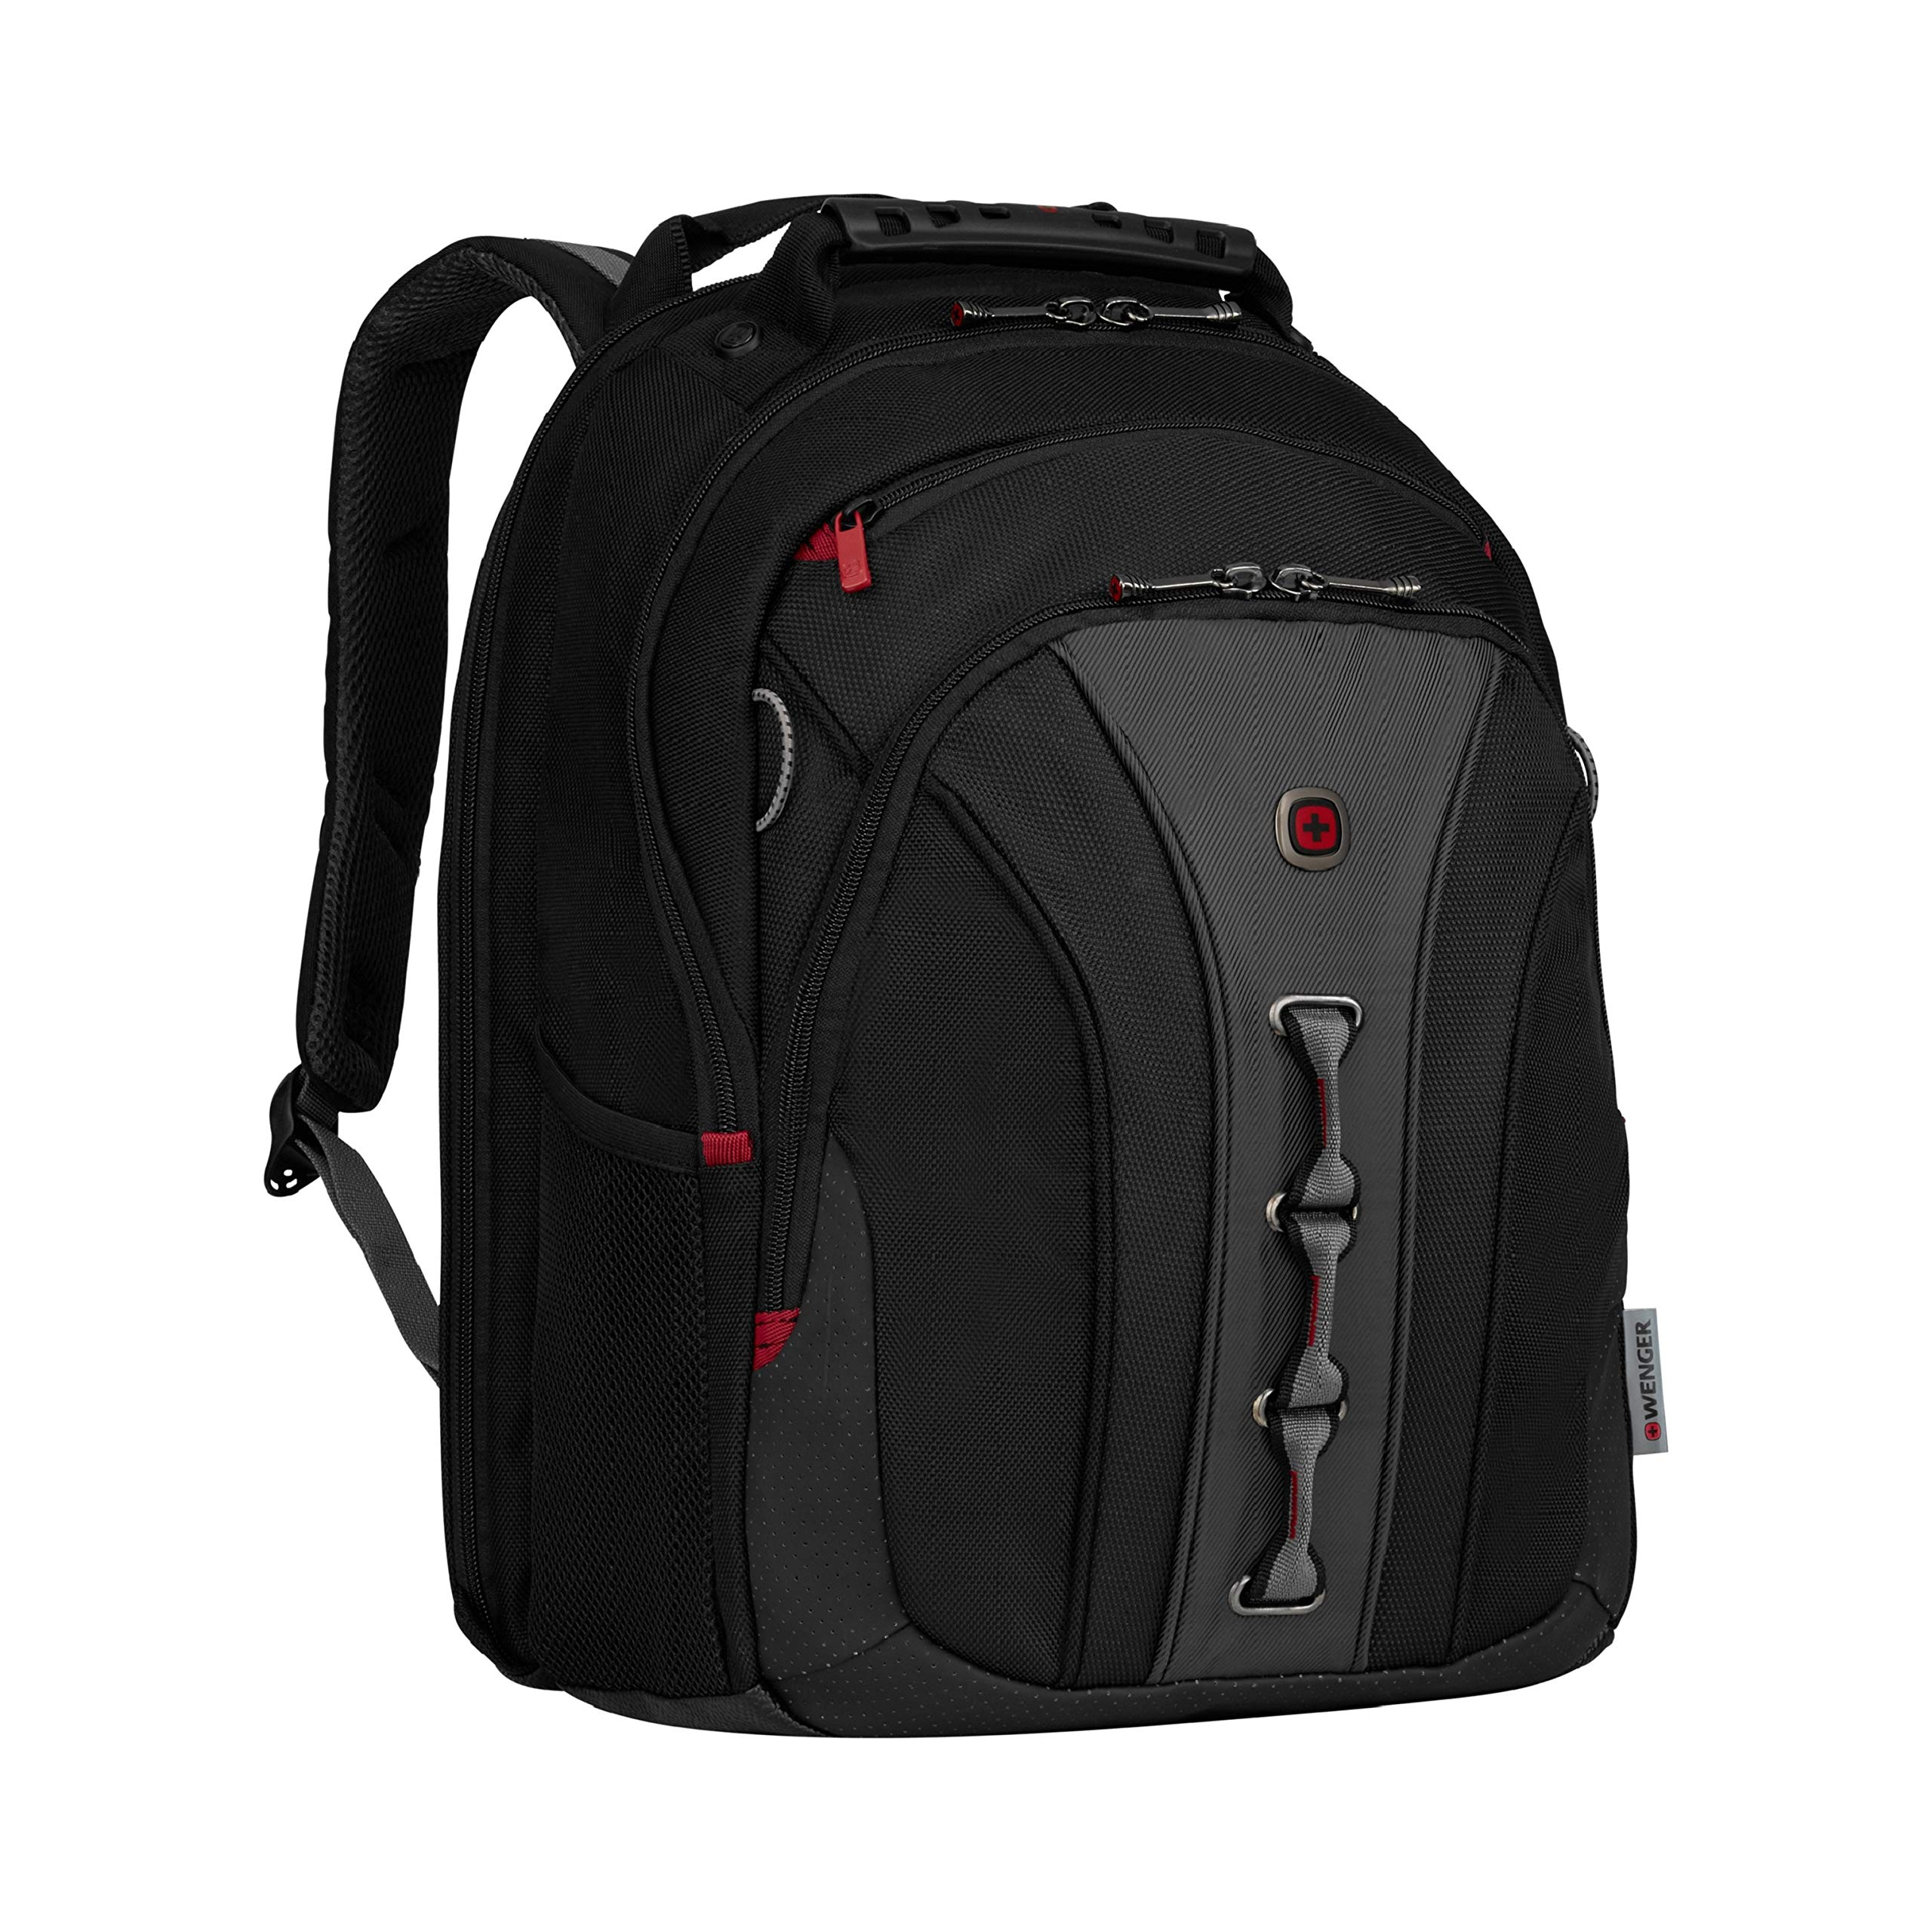 Wenger 600631 The Legacy Notebook Carrying Backpack, 16'', Black/Gray (WA-7329-14F00) by Wenger